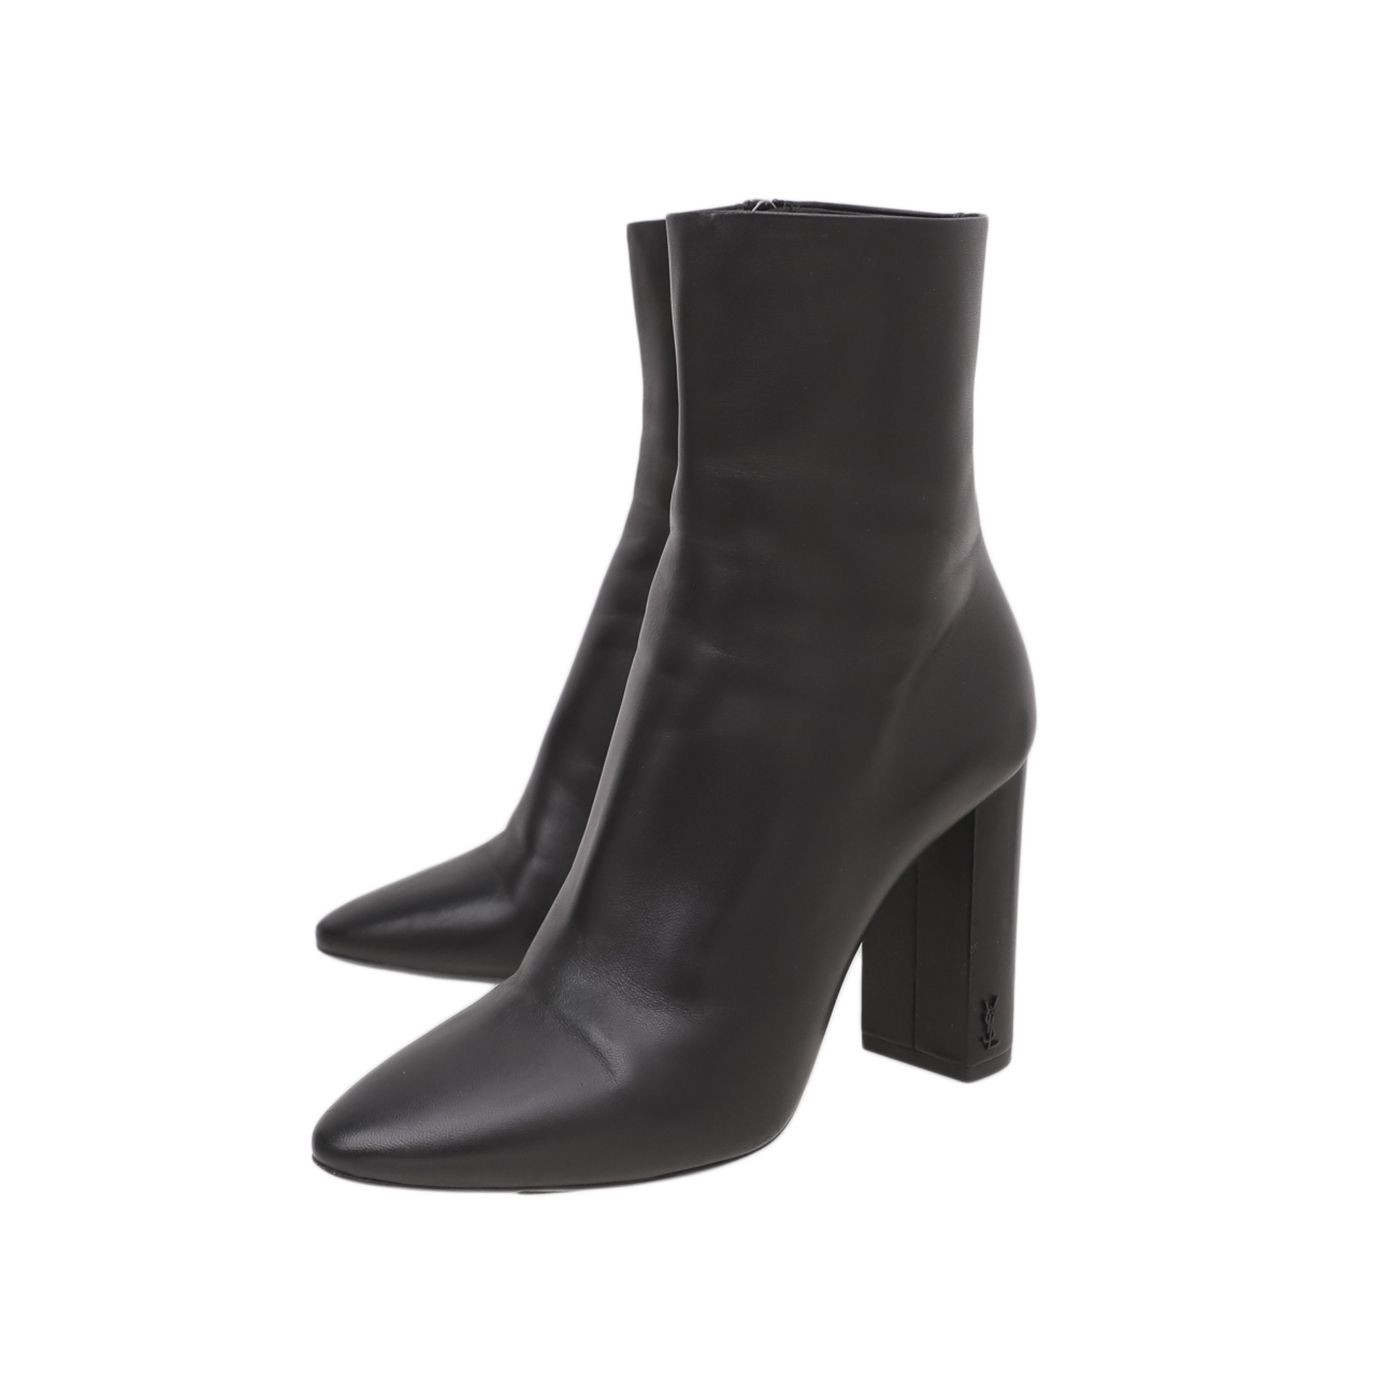 YSL Black Lou Ankle Boots 39